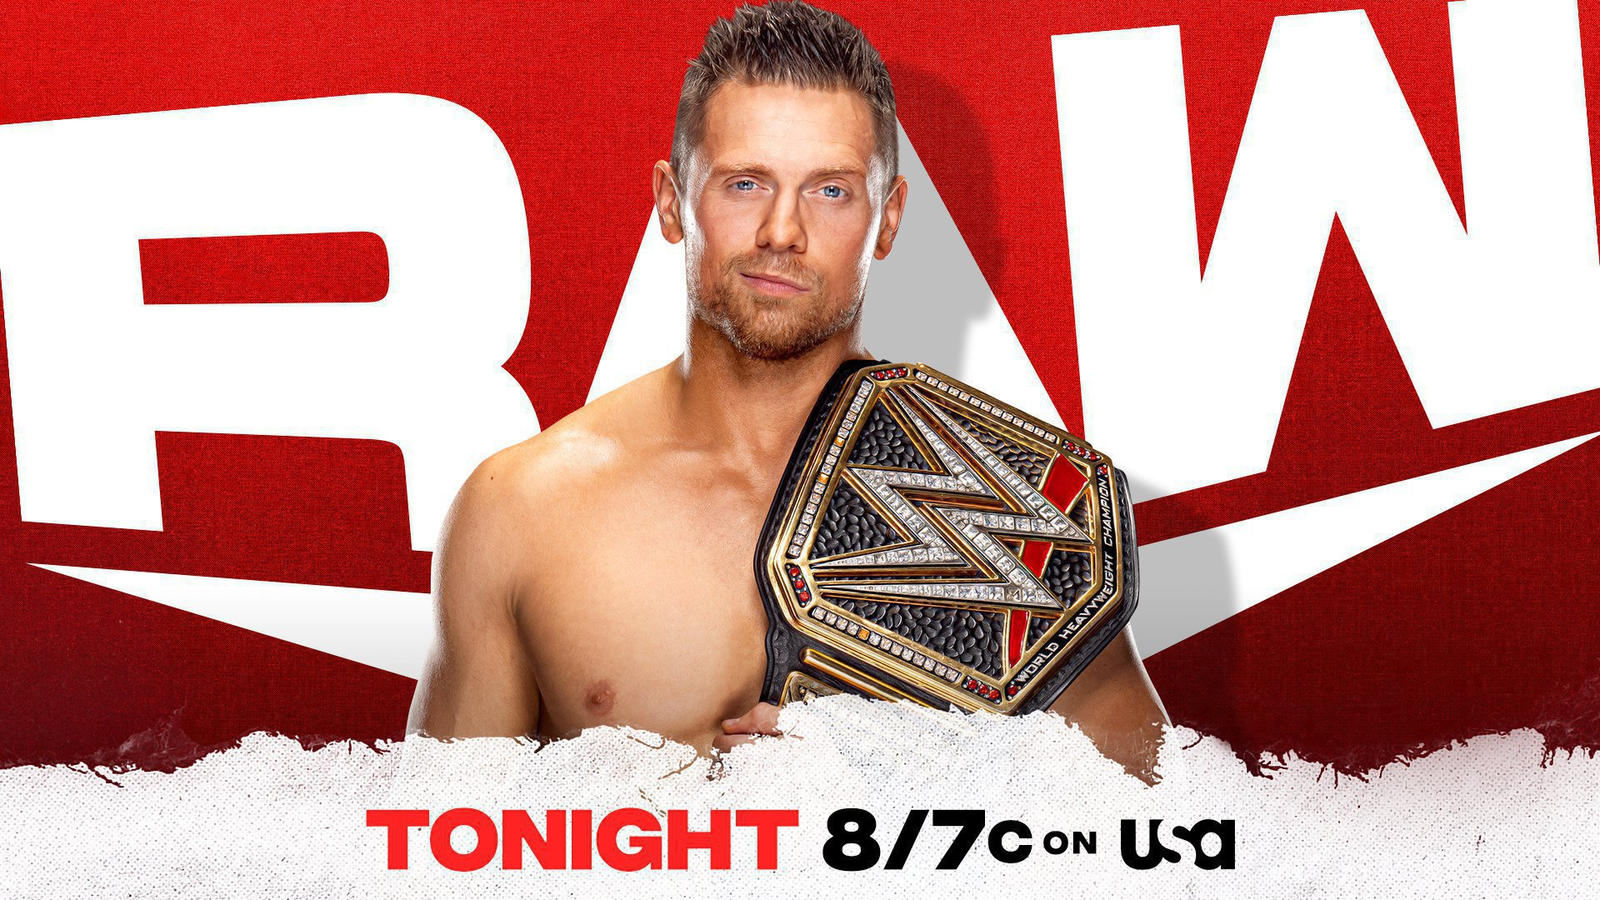 WWE RAW Results - February 22, 2021